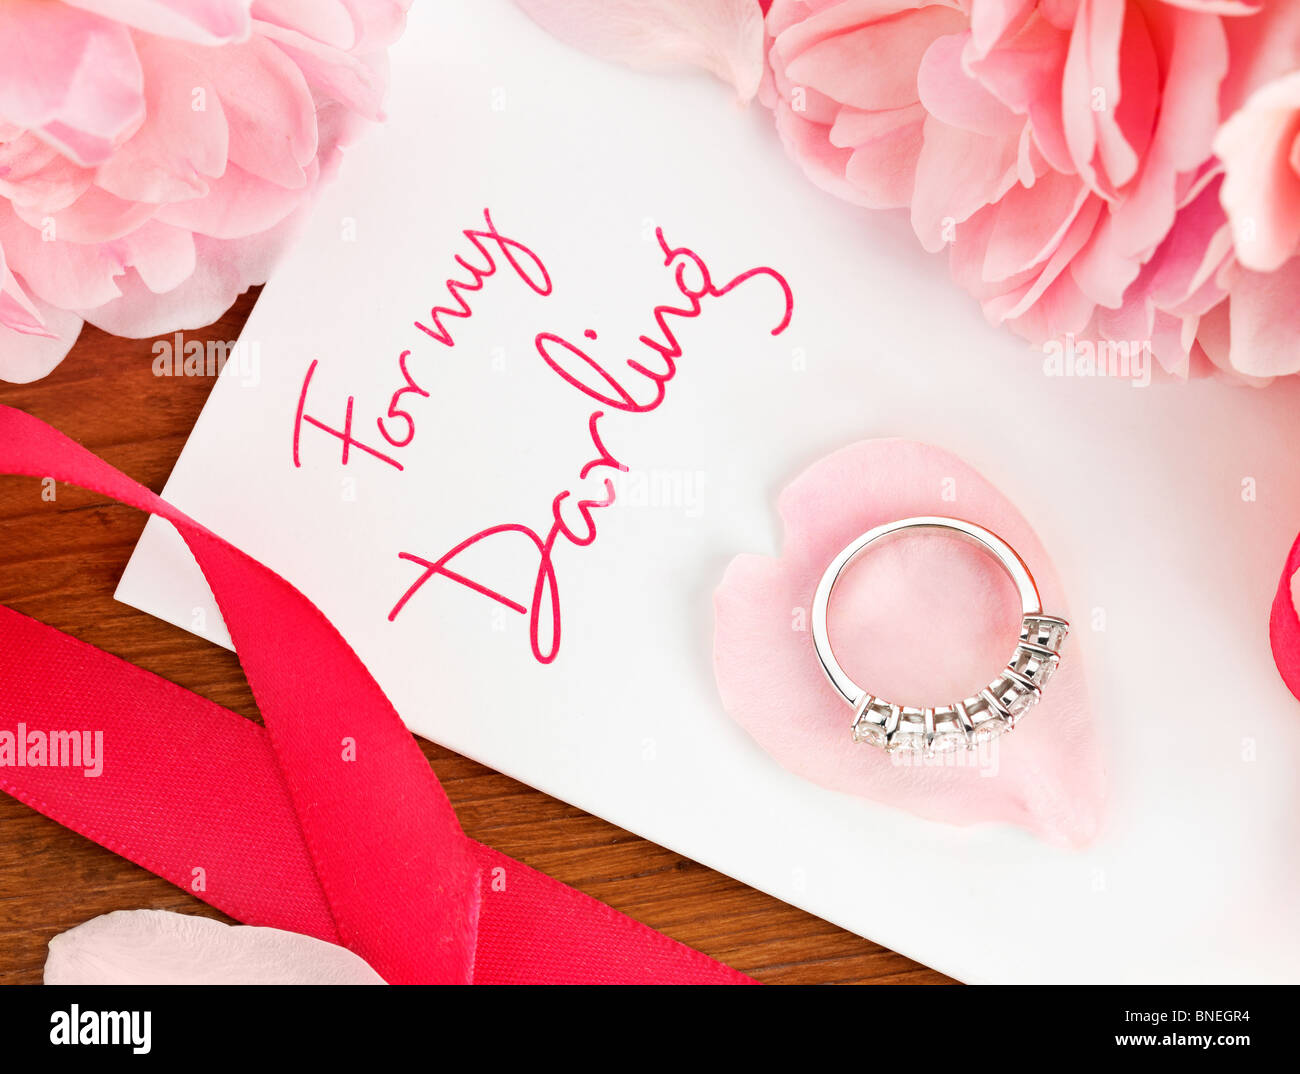 Romantic Greeting Cards - Stock Image